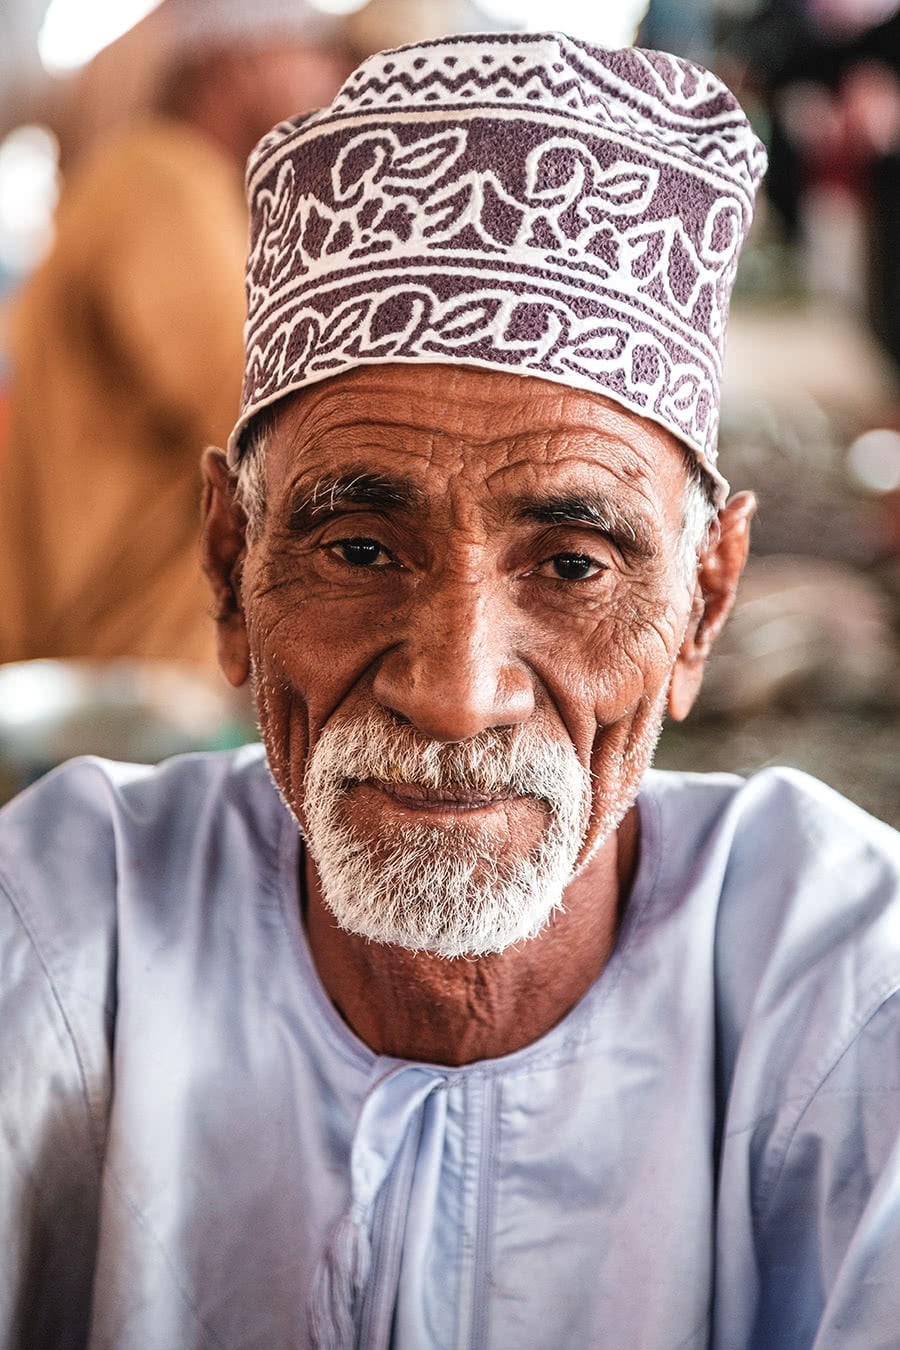 A vendor at the Mutrah Fish Market in Muscat, Oman.